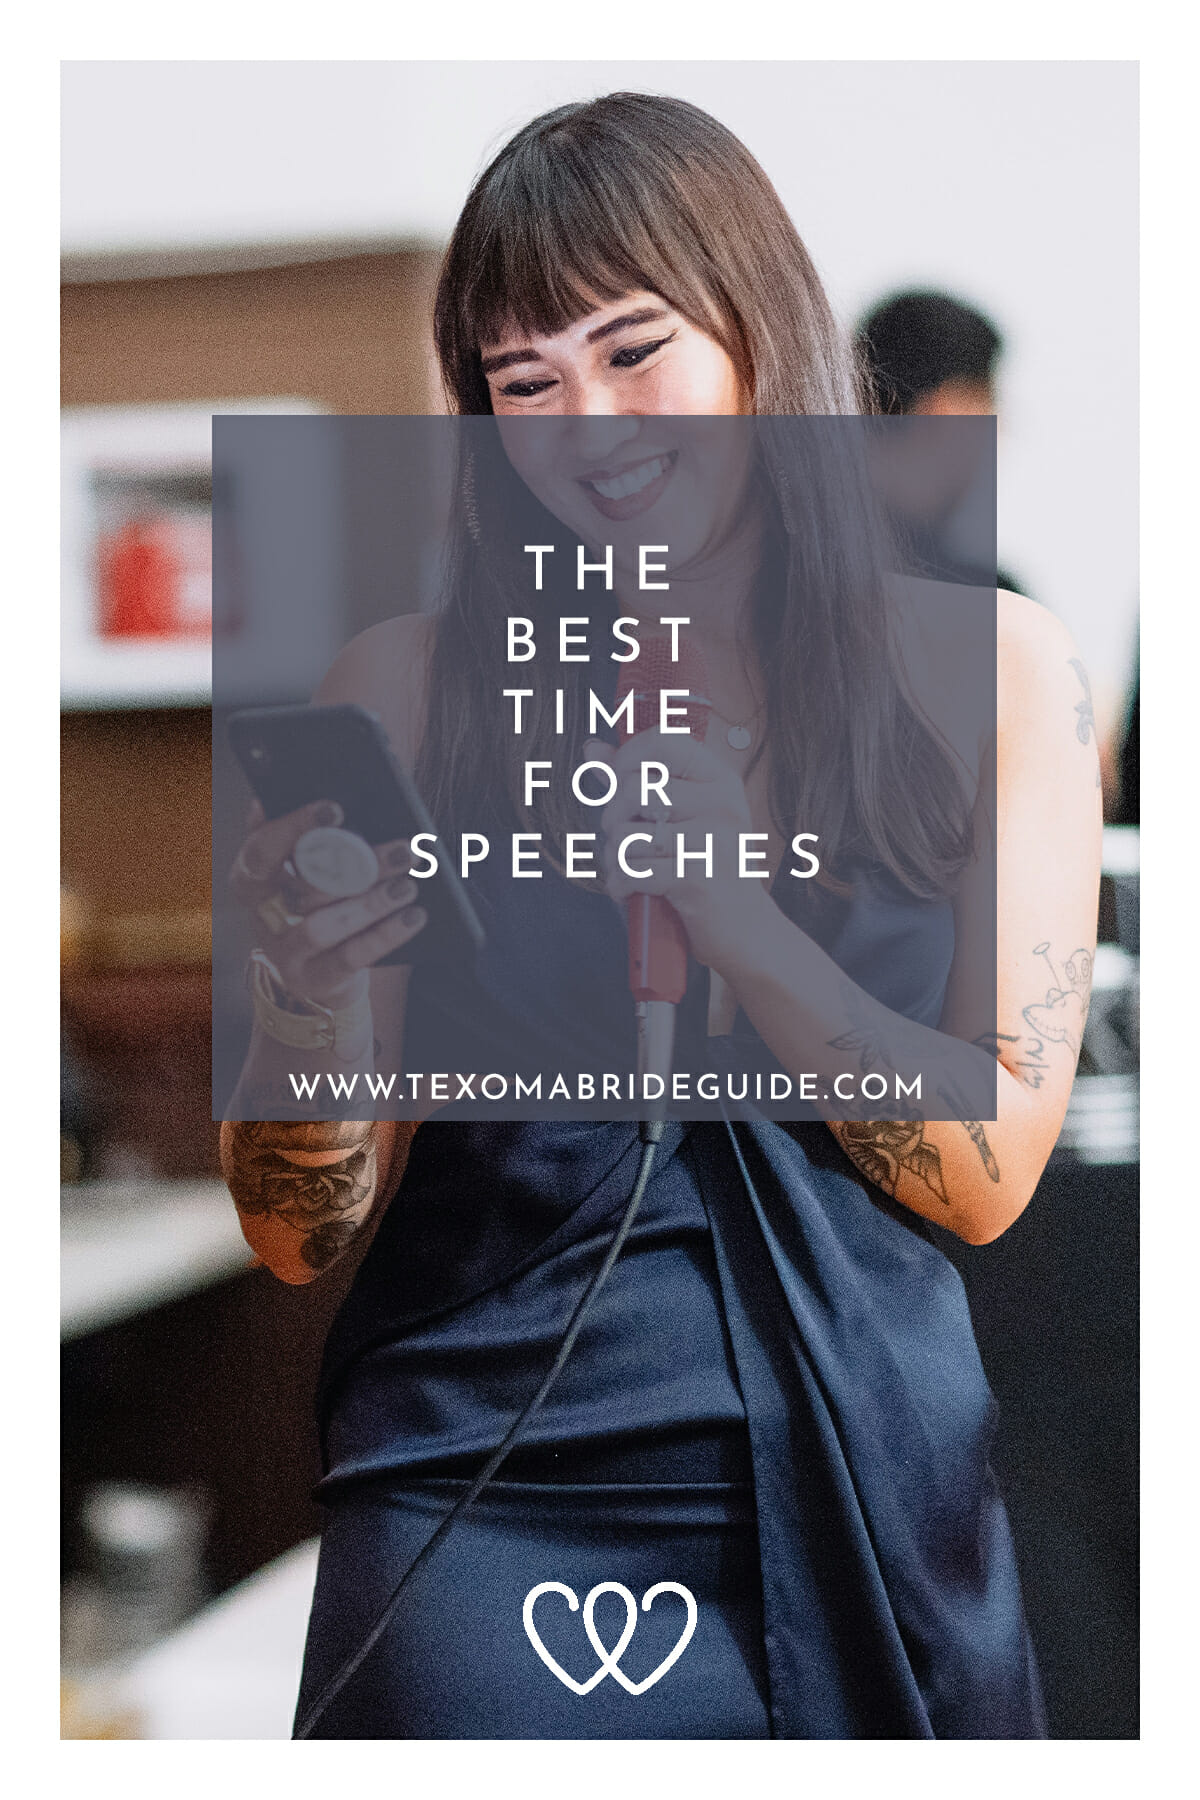 The Best Time for Speeches | Texoma Bride Guide Blog